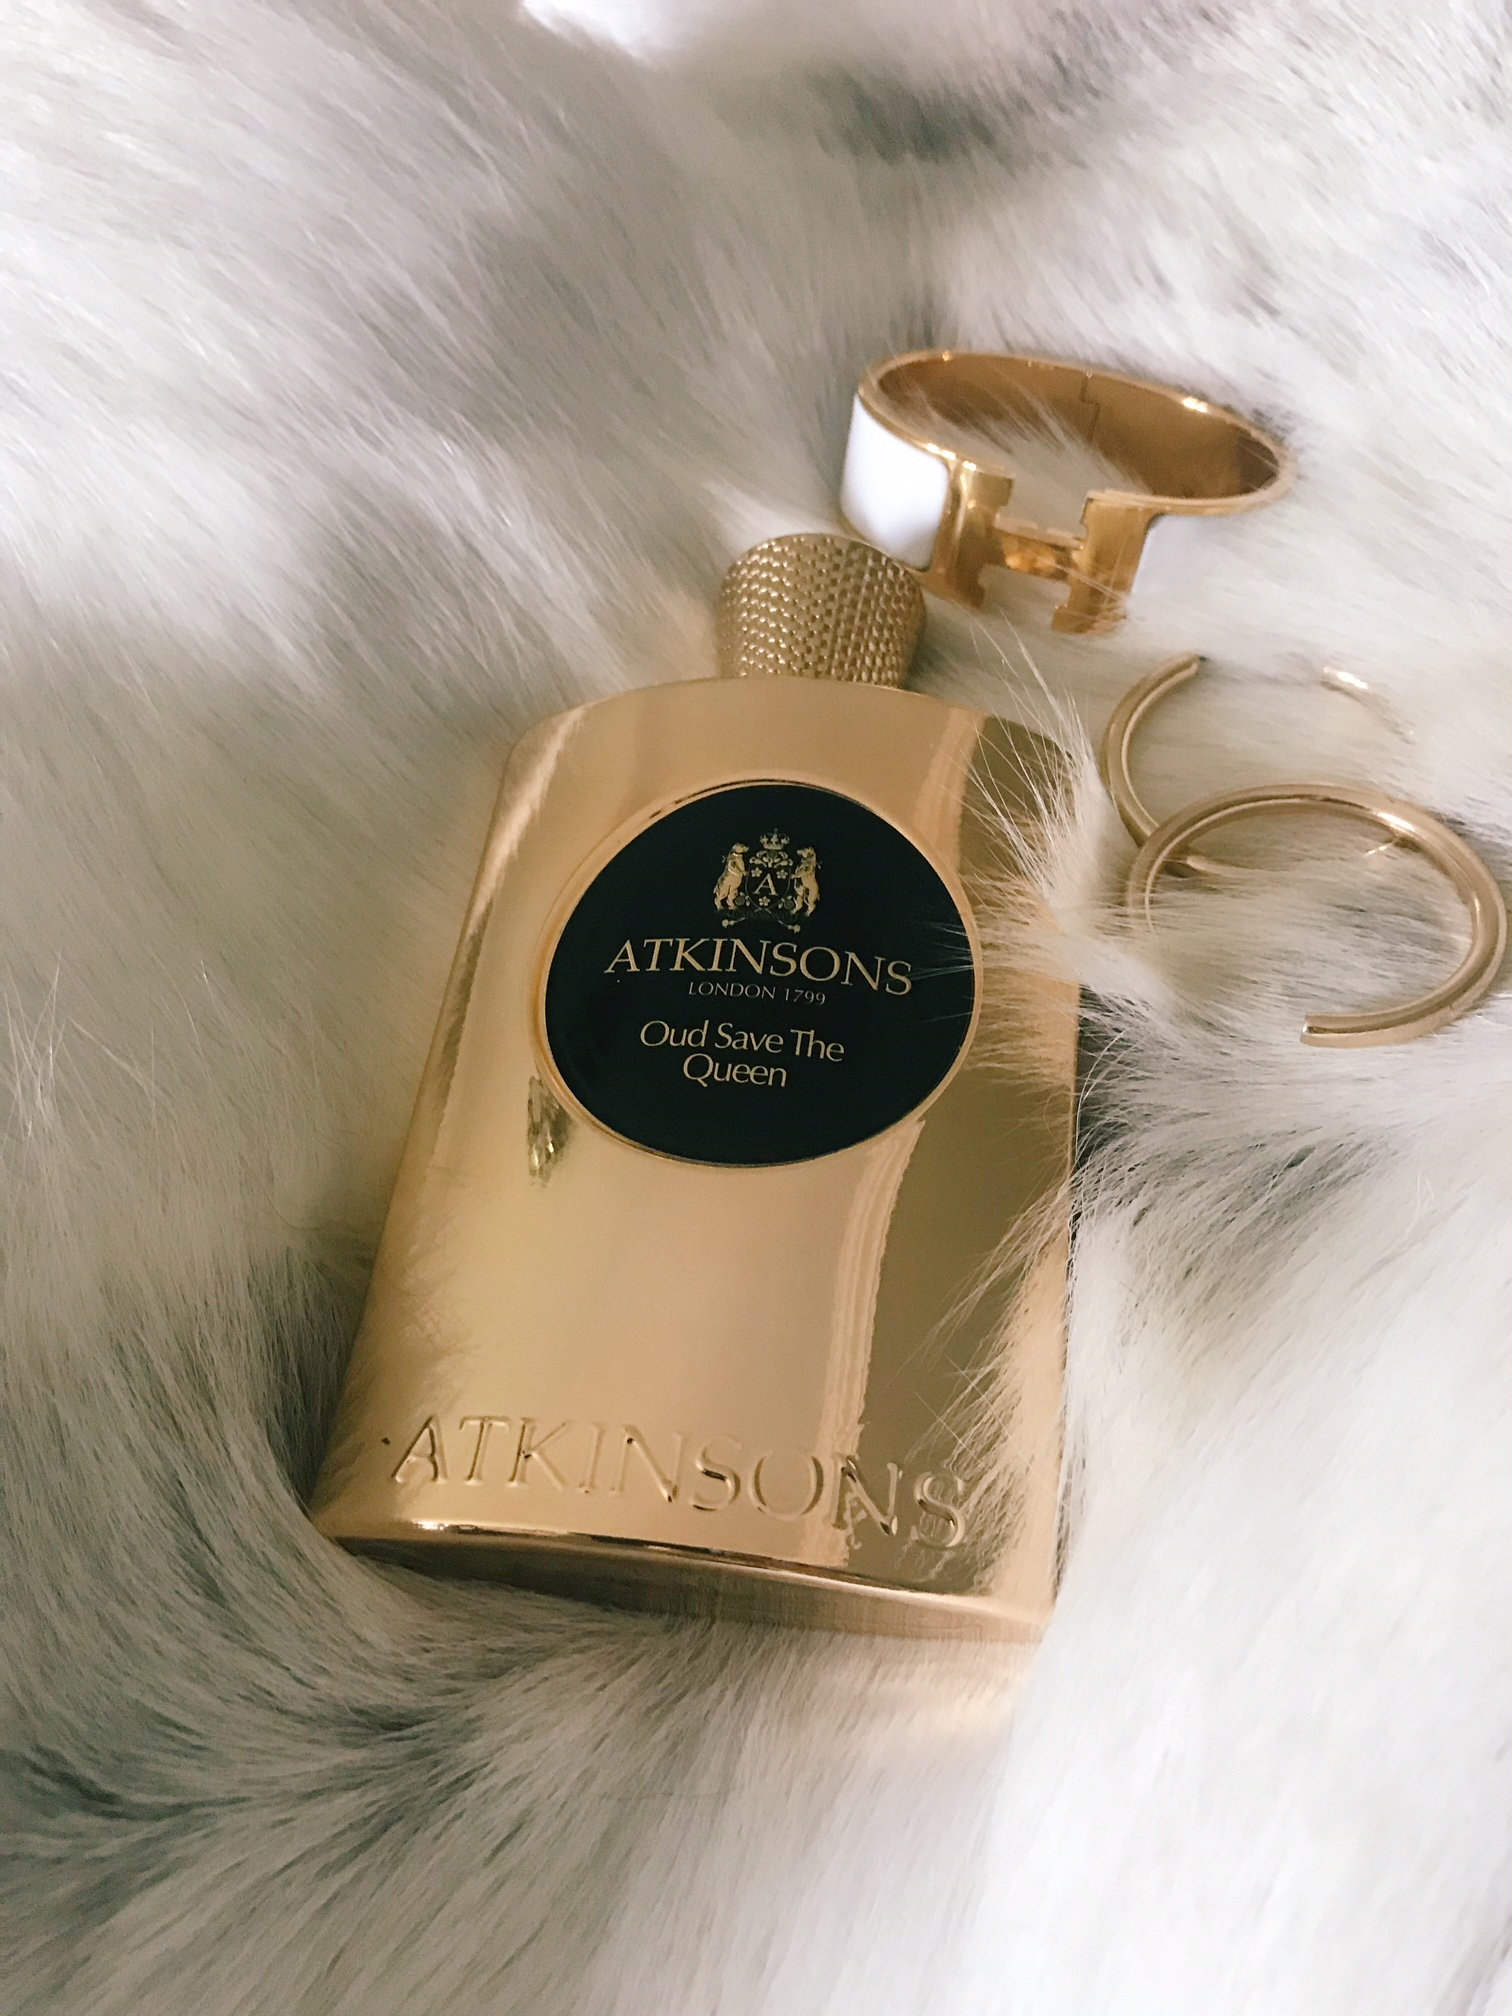 Atkinsons Oud Save The Queen, £159 for 100mls.